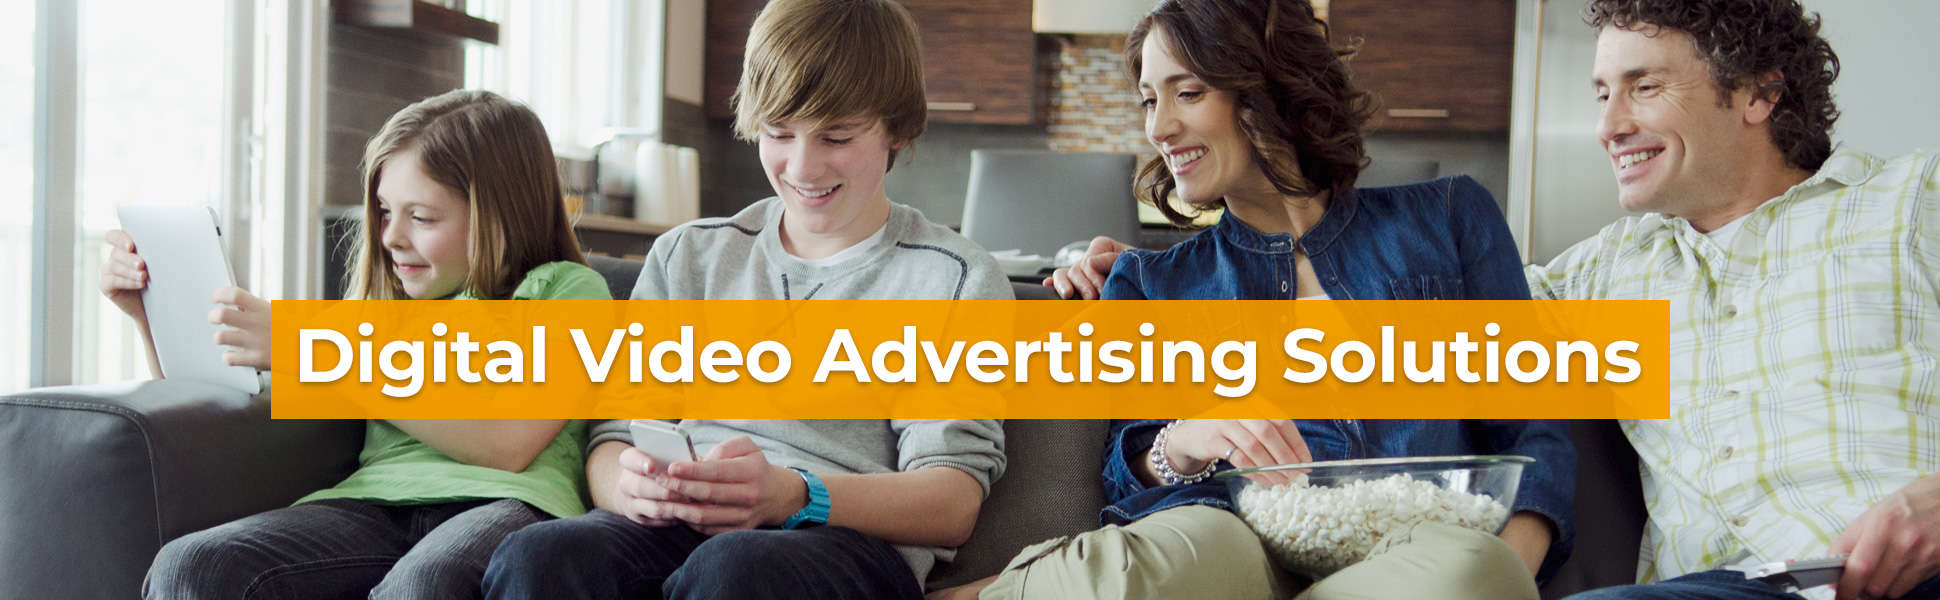 Digital Video Advertising Solutions